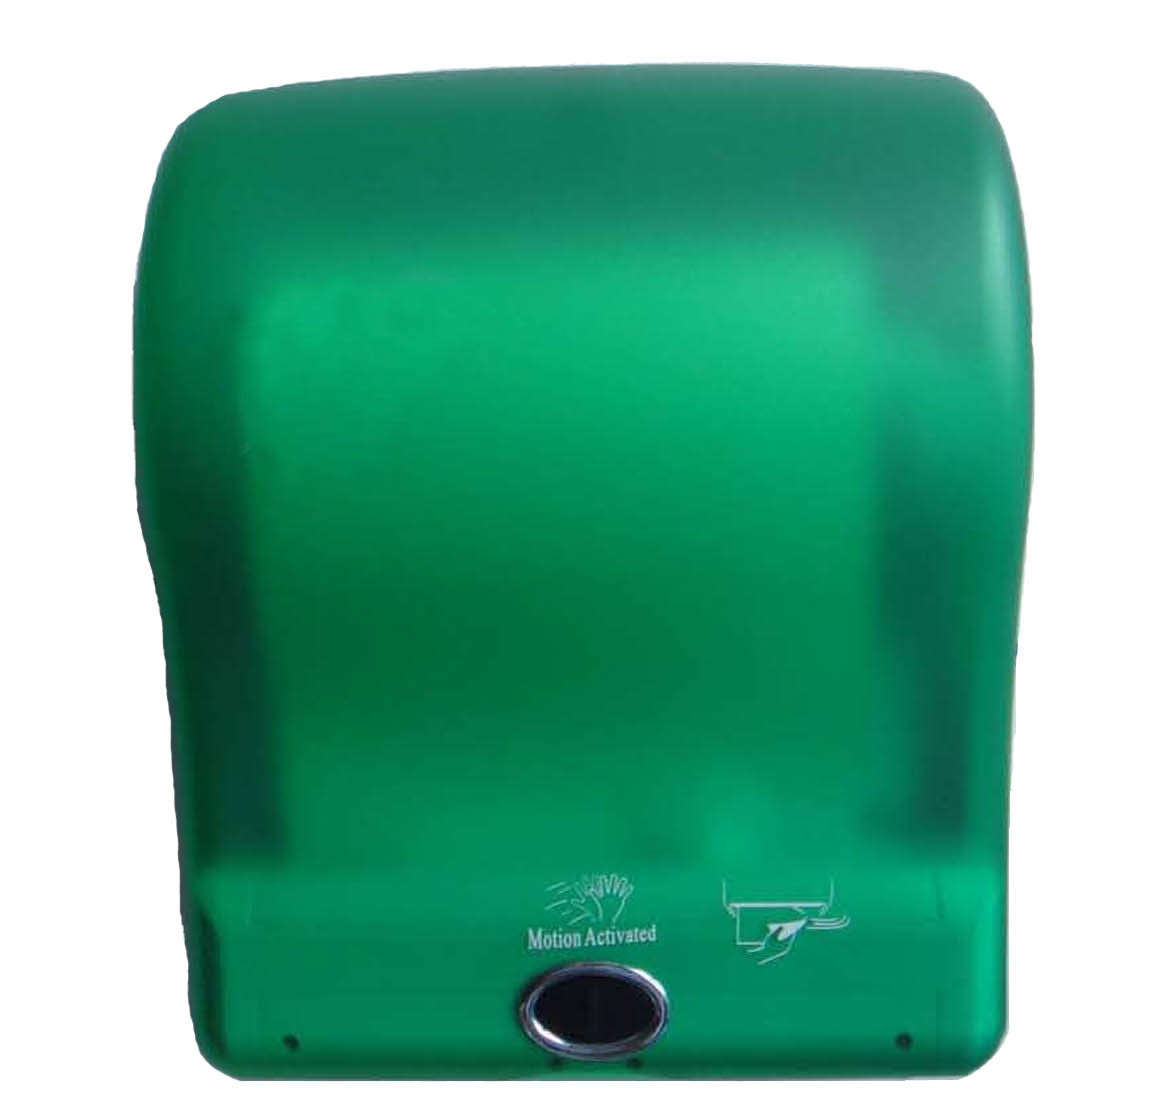 China Automatic Paper Towel Dispenser Pd S10 China